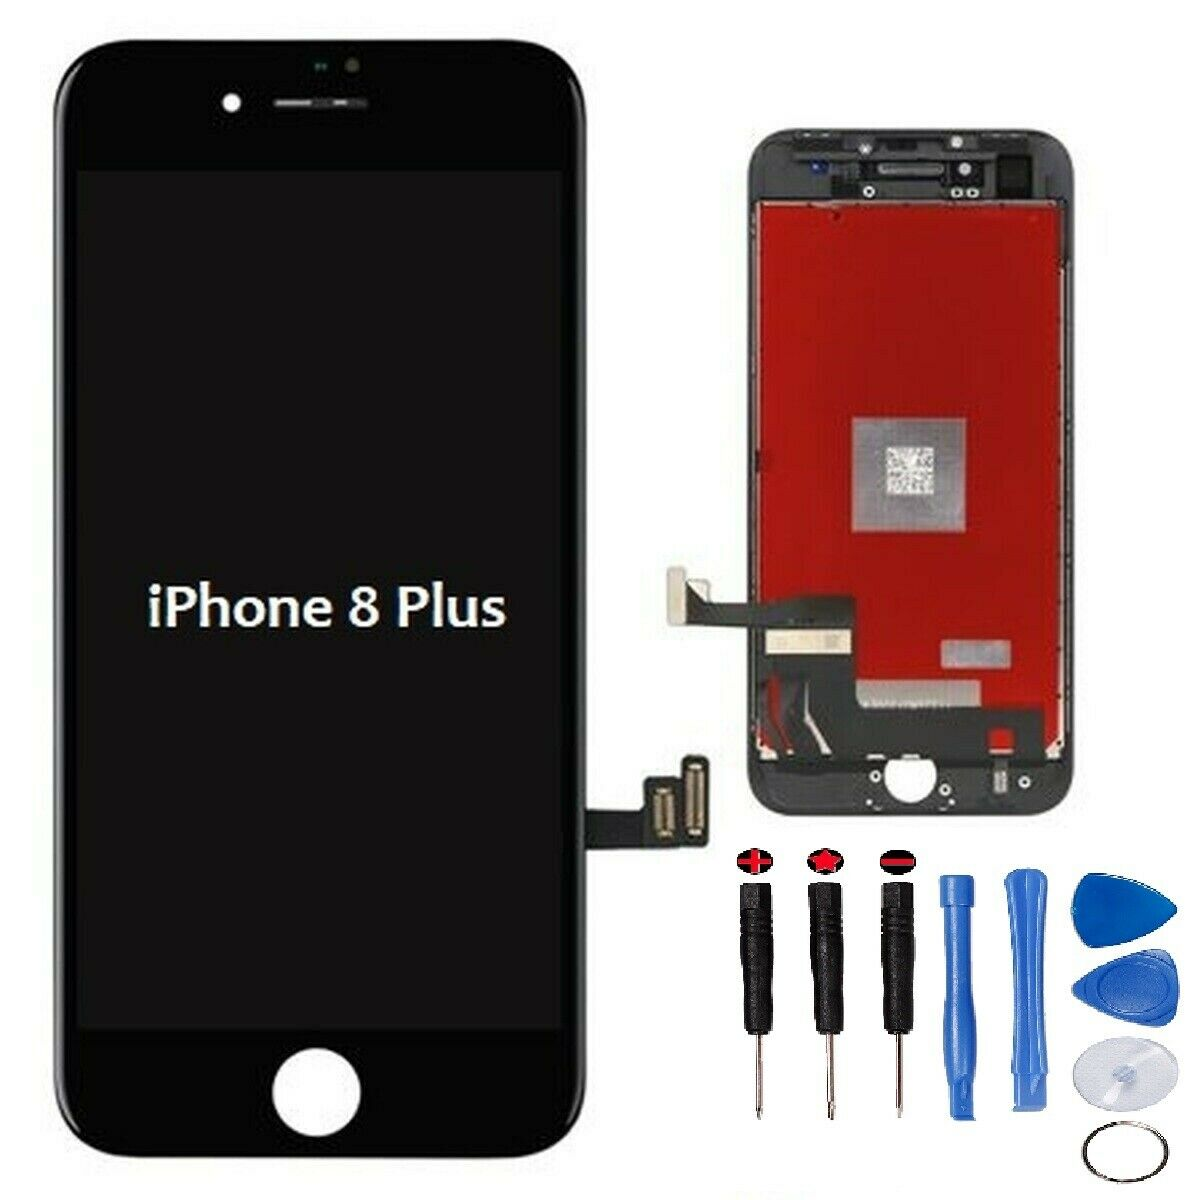 online store 399fb e8745 Details about For iPhone 8 plus 8P LCD Screen Replacement Digitizer Retina  Display Black/White